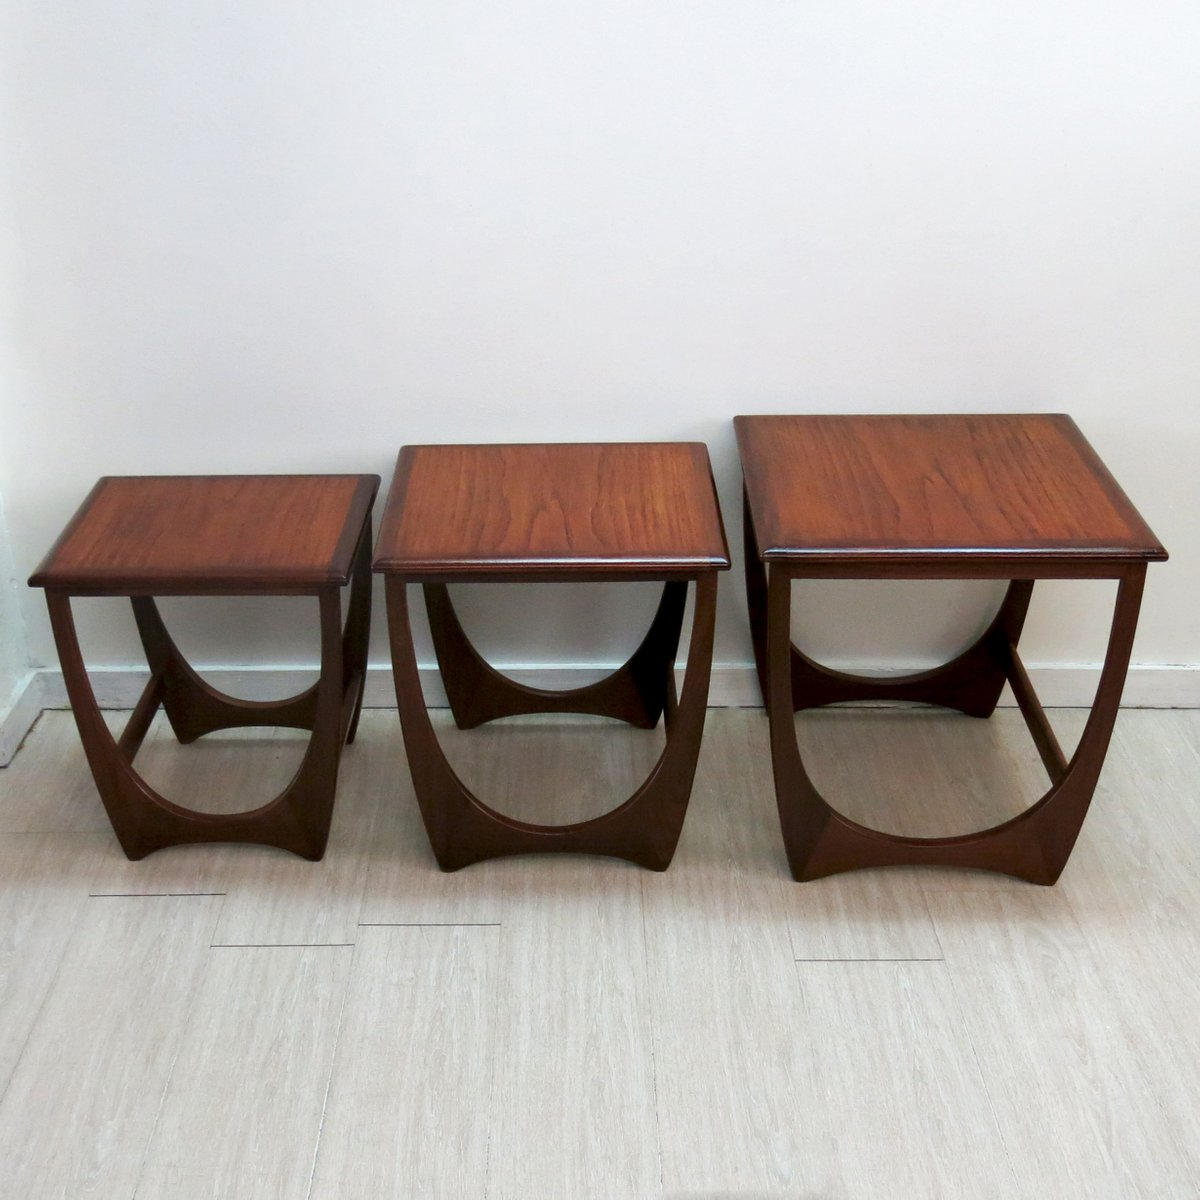 astro satztische aus afrikanischem teak von g plan 1960er. Black Bedroom Furniture Sets. Home Design Ideas